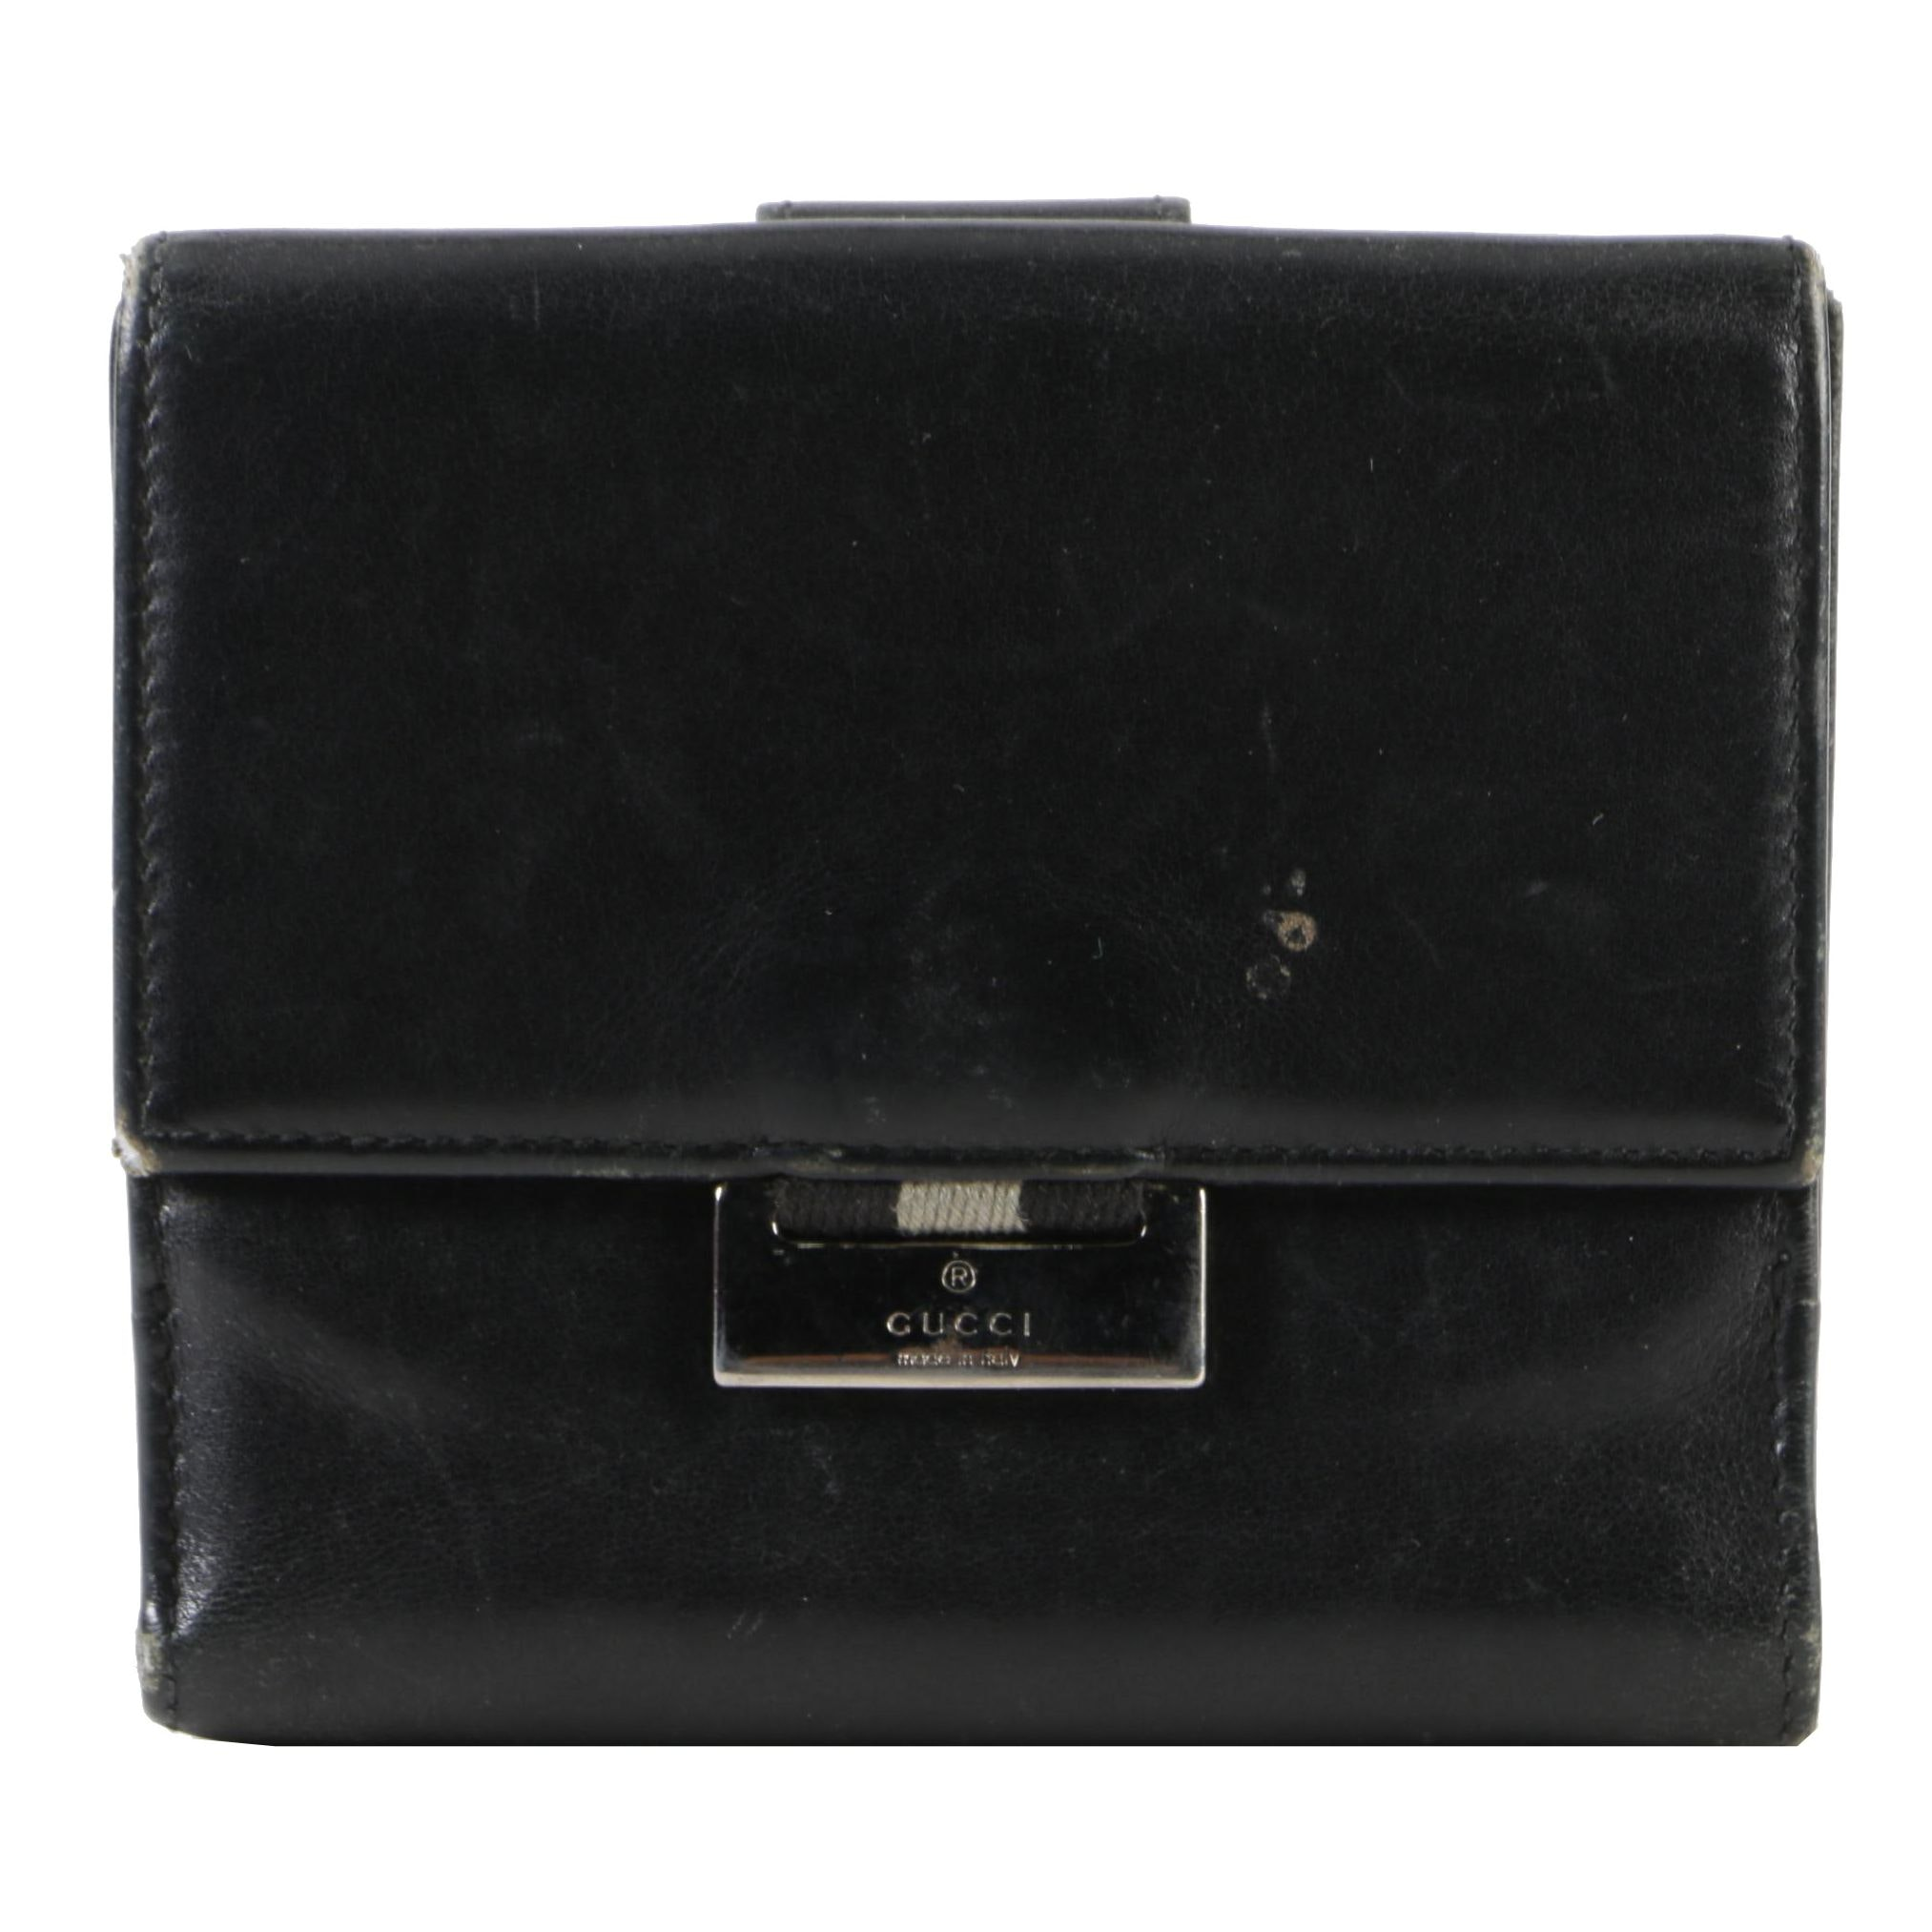 Gucci French Flap Black Leather Wallet